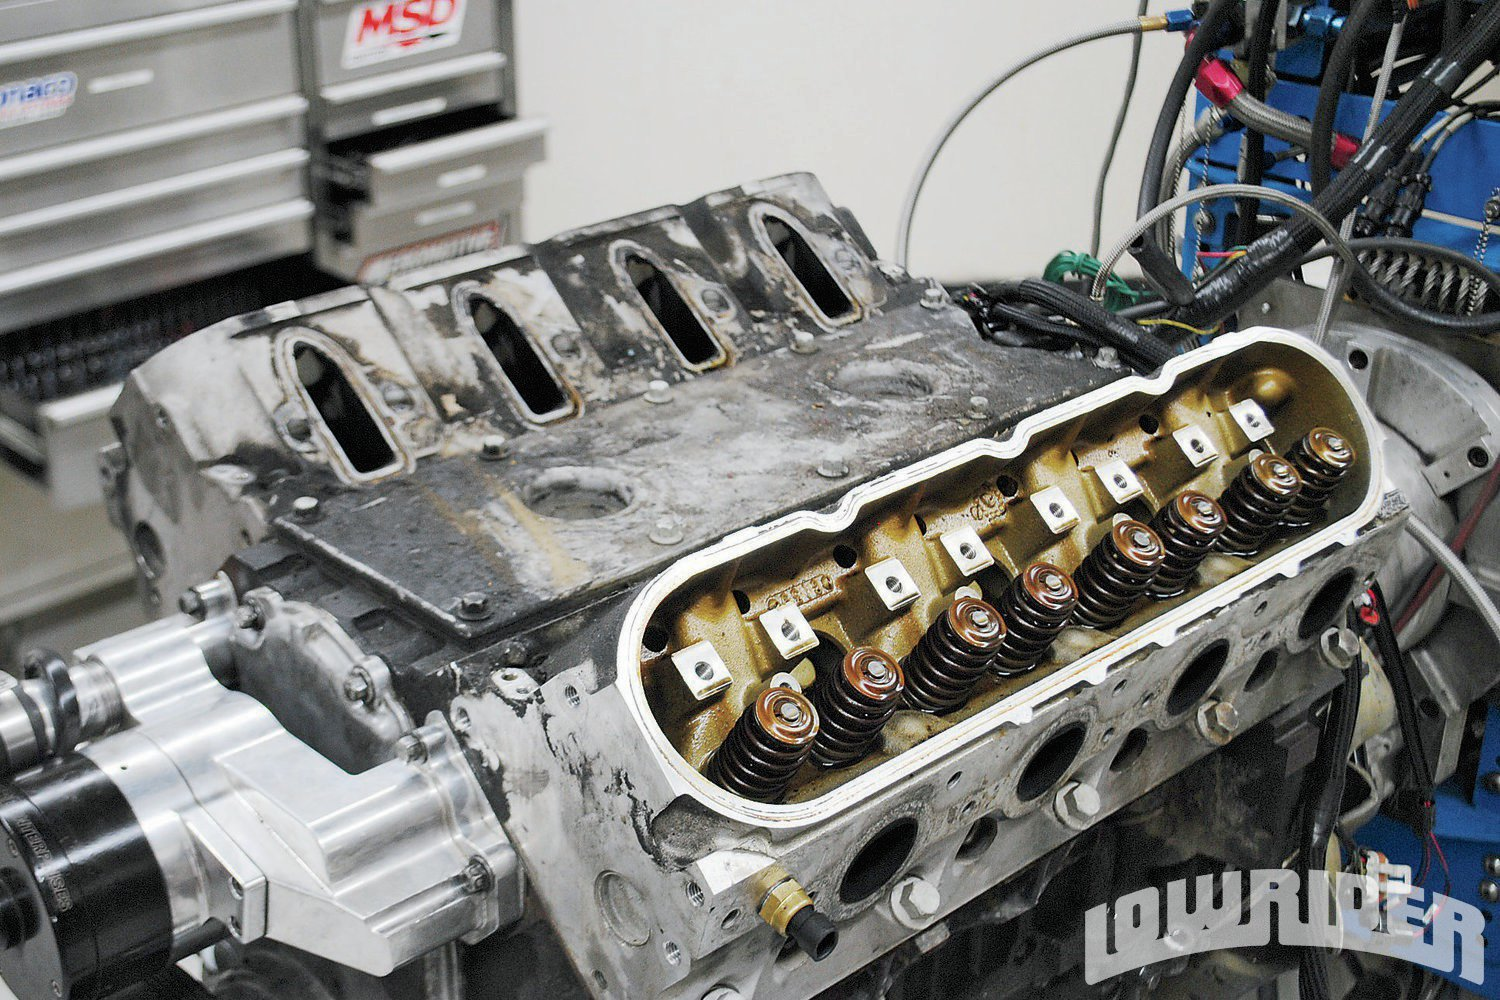 <strong>3</strong>. Not exactly your typical spotless crate motor, our test mules were dirty, oily, and had seen countless thousands of abusive miles. Despite this, both offered surprising power and we wouldn't hesitate to swap one into our favorite Impala or Monte Carlo.